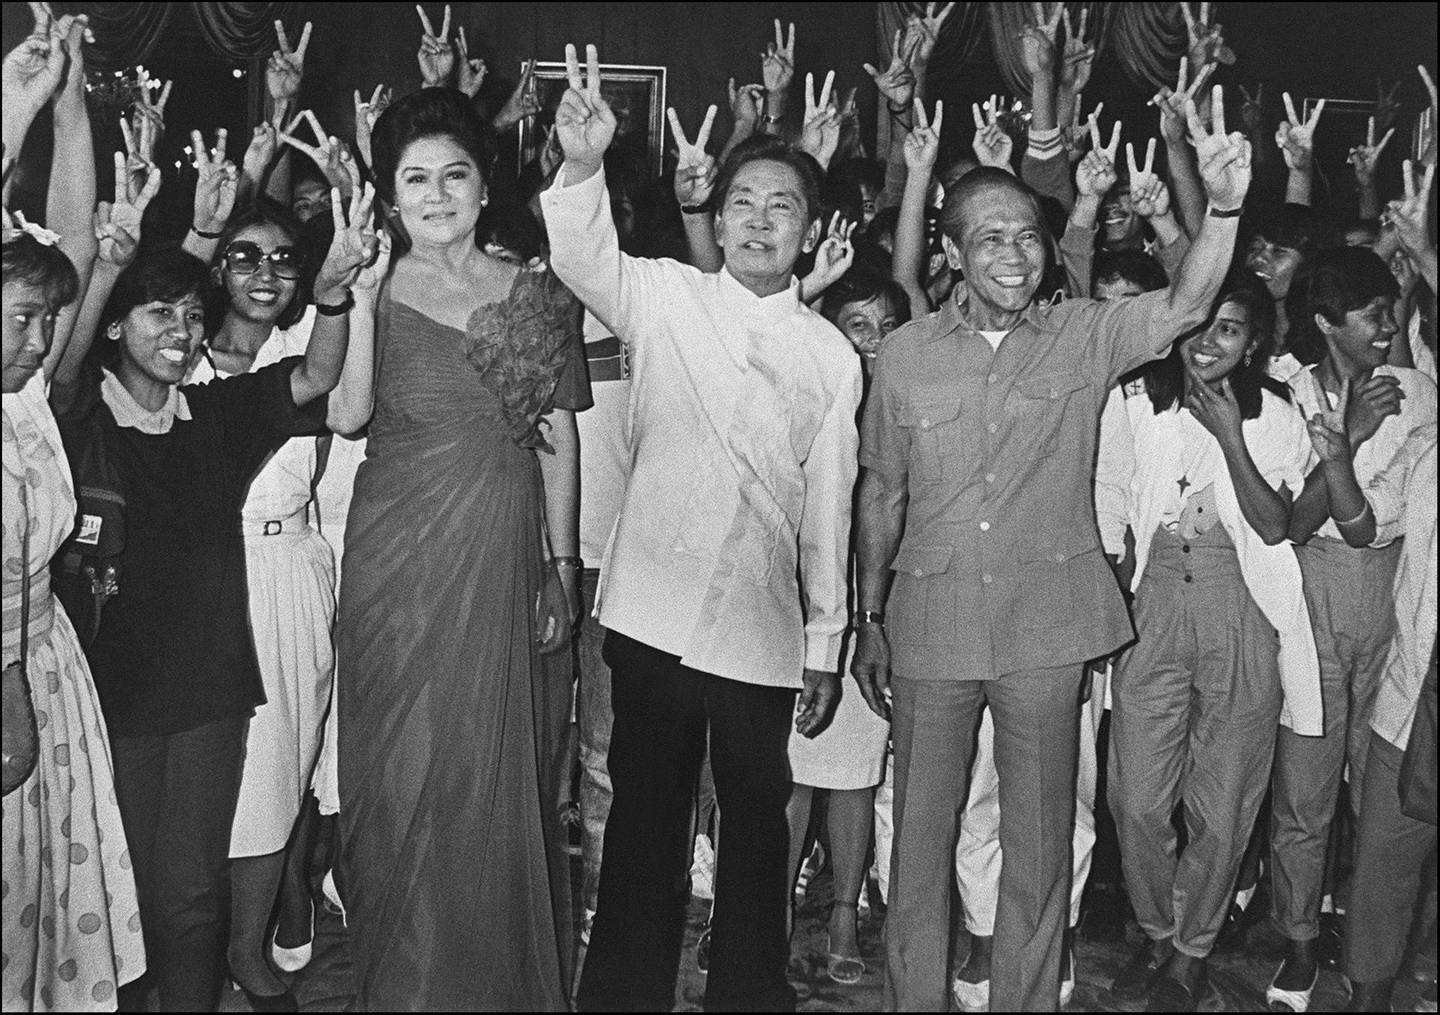 """Surrounded by supporters, Philippines President Ferdinand Marcos (C), his wife Imelda and his Vice President Arturo Tolentino make the """"V"""" sign for victory of the presidential elections, 16 February 1986 in Manila at the Malacanang Palace. (Photo by HO / AFP)"""